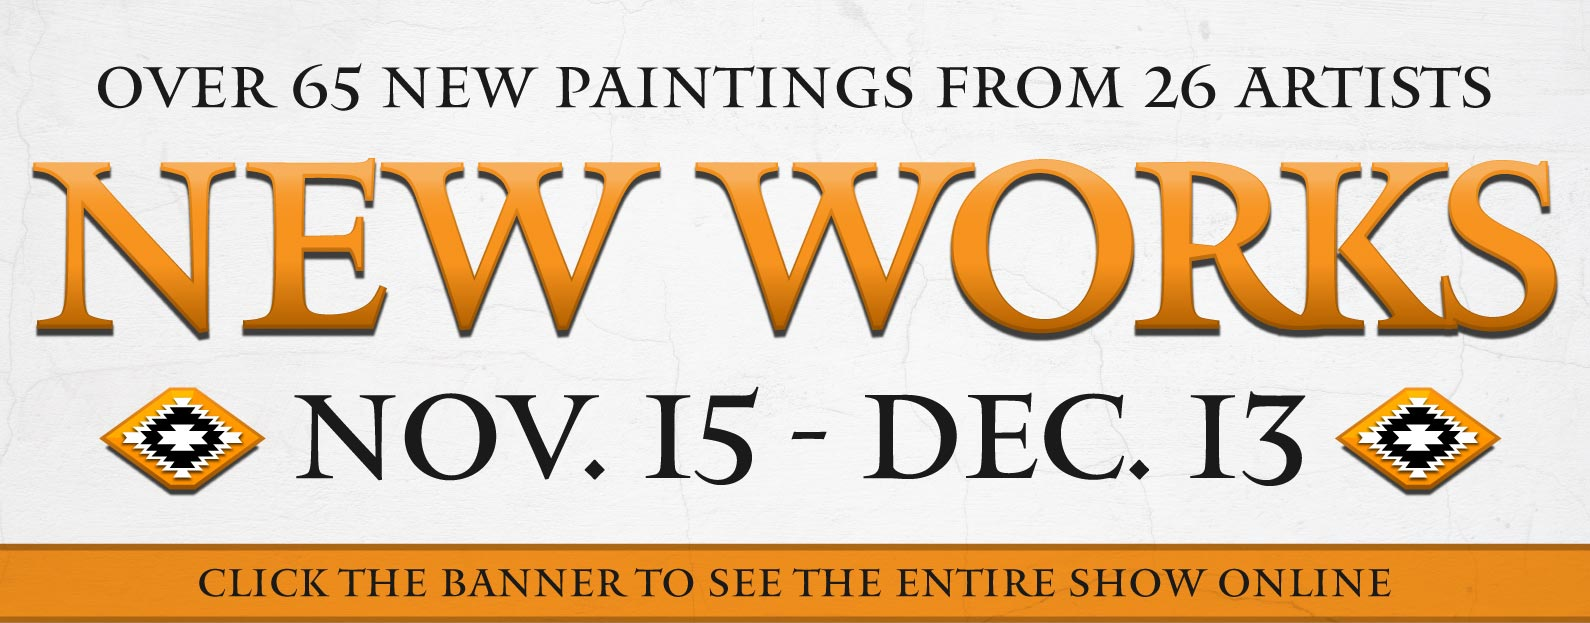 New Works Show Tucson Gallery  Opens Friday, November 15th, 10:00 am  Show ends December 13, 2019.